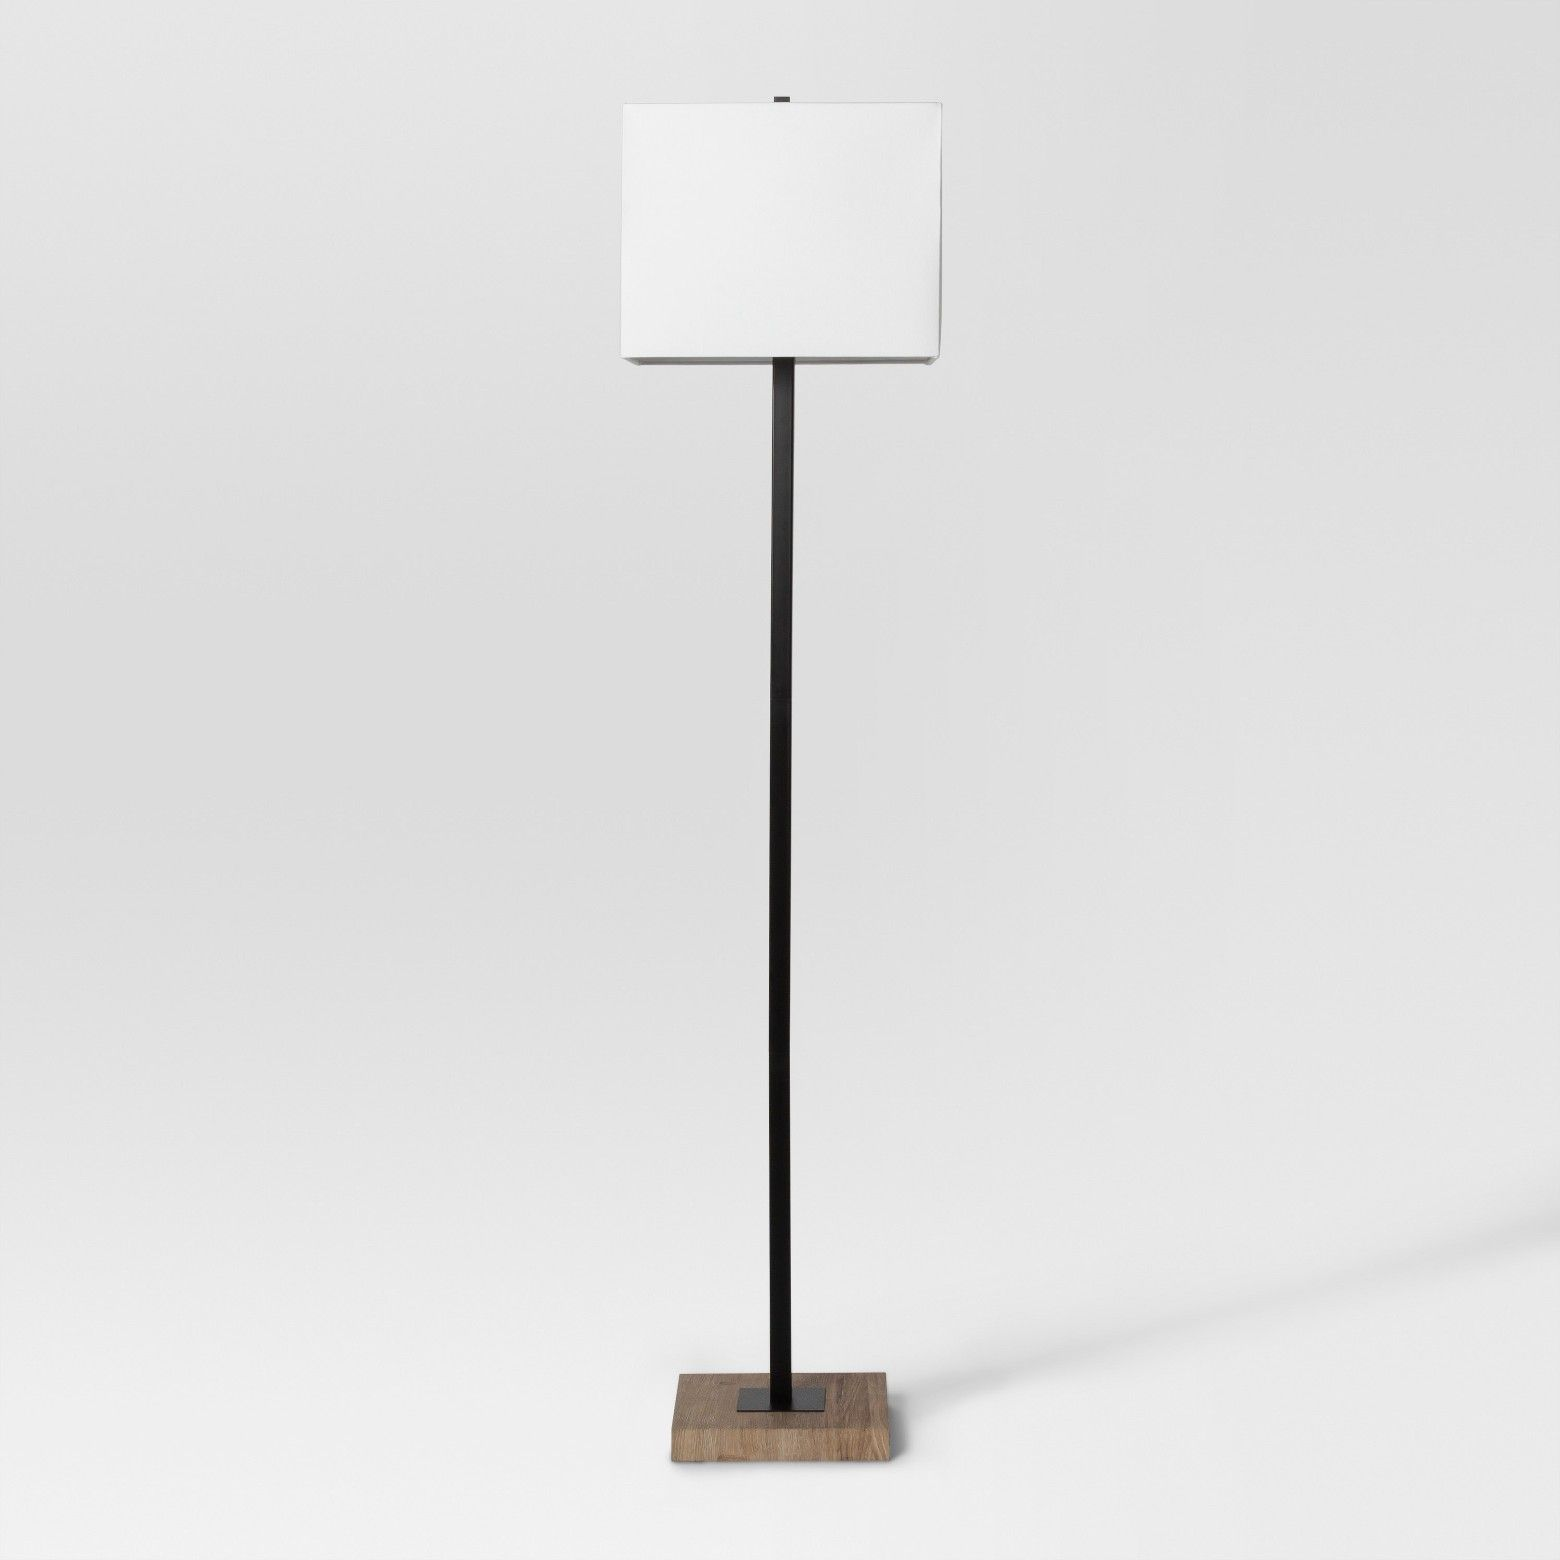 Modern Wood Square Floor Lamp Black Includes Cfl Light Bulb Project 62 Square Floor Lamp Target Floor Lamps Black Floor Lamp